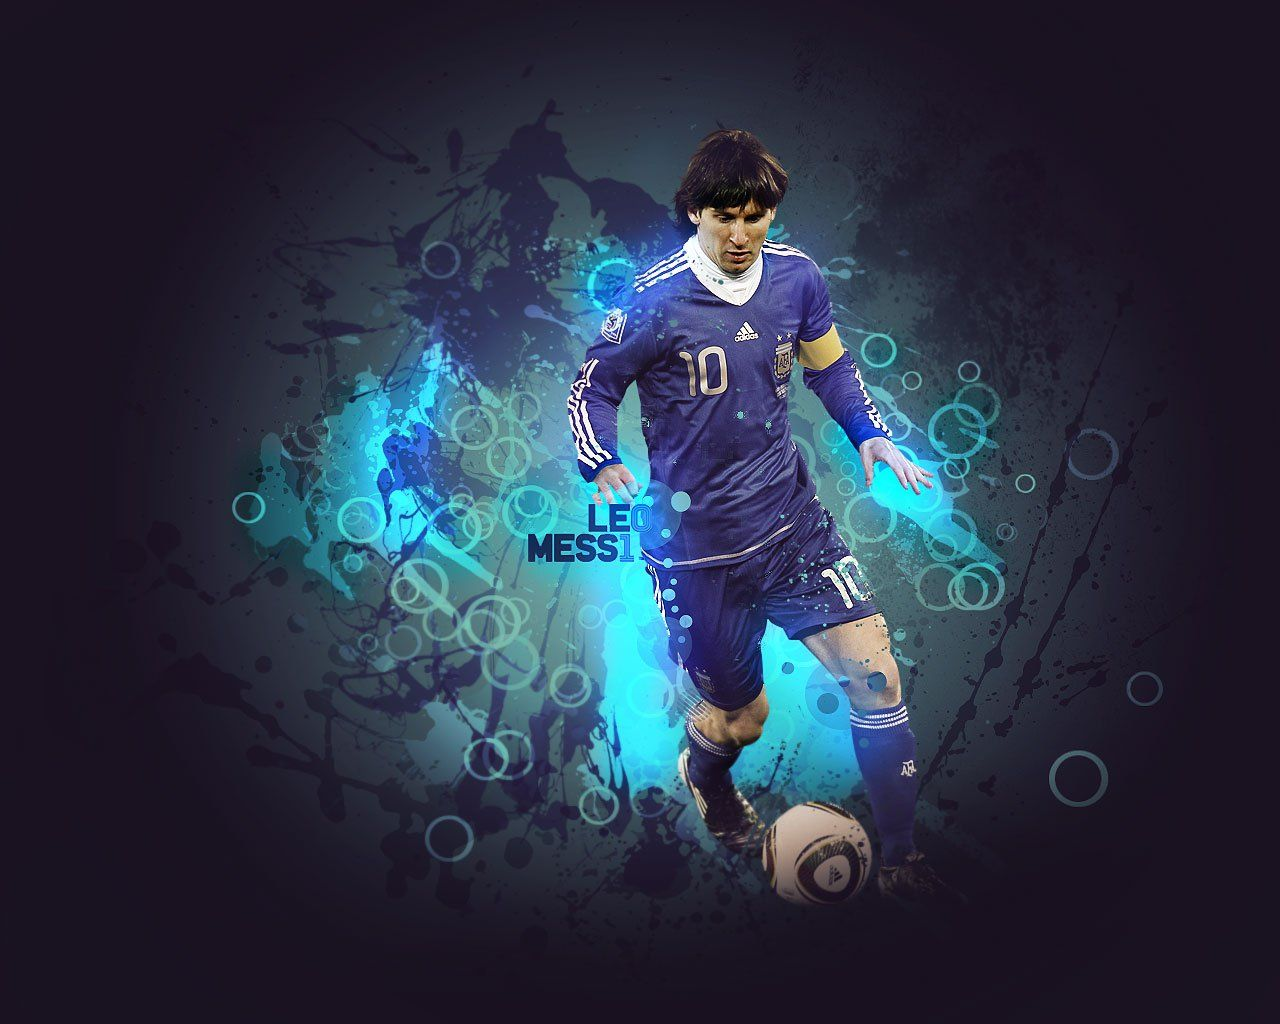 Messi Name Lionel Argentina Fifa Wc  wallpapers  hd. Messi Name Lionel Argentina Fifa Wc  wallpapers  hd   HD